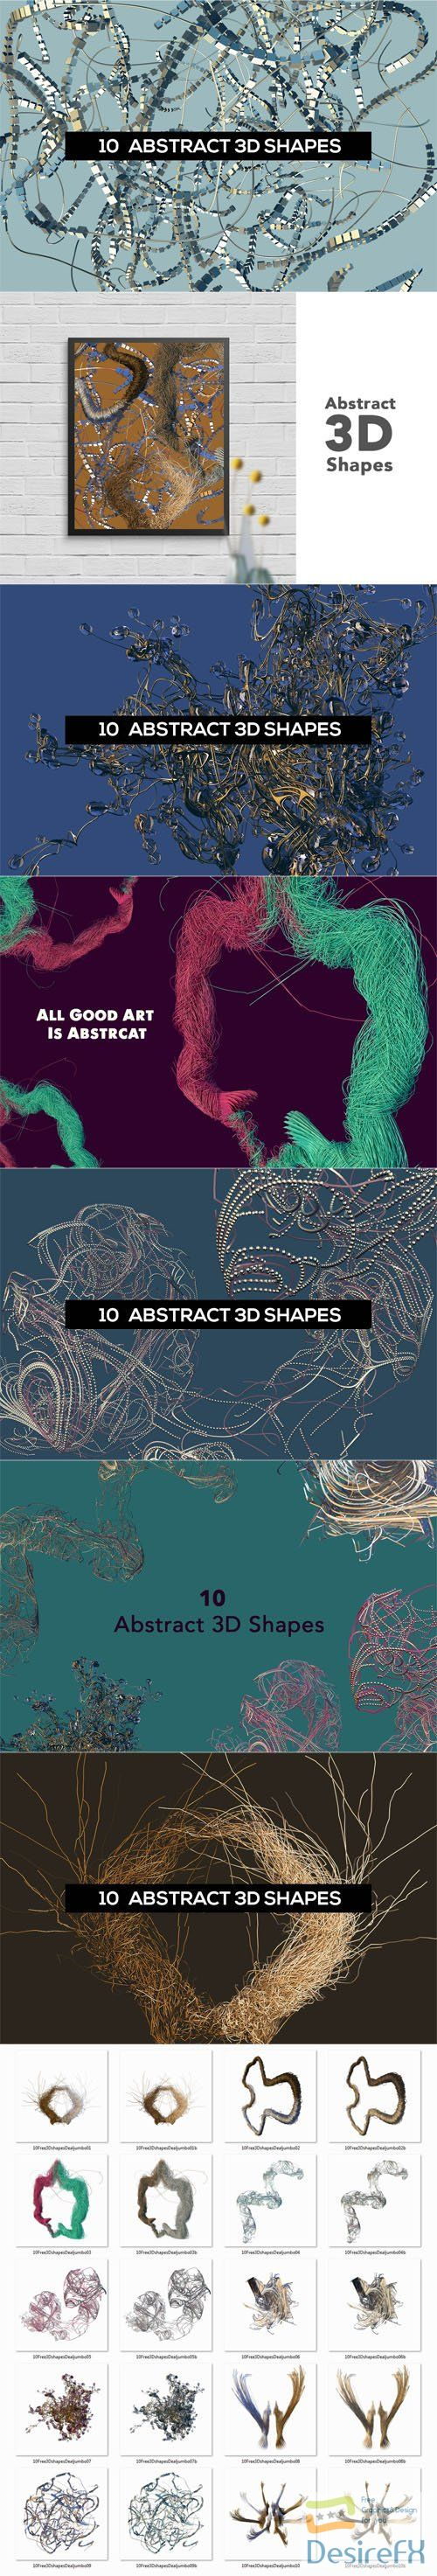 10 Abstract Futuristic 3D Shapes